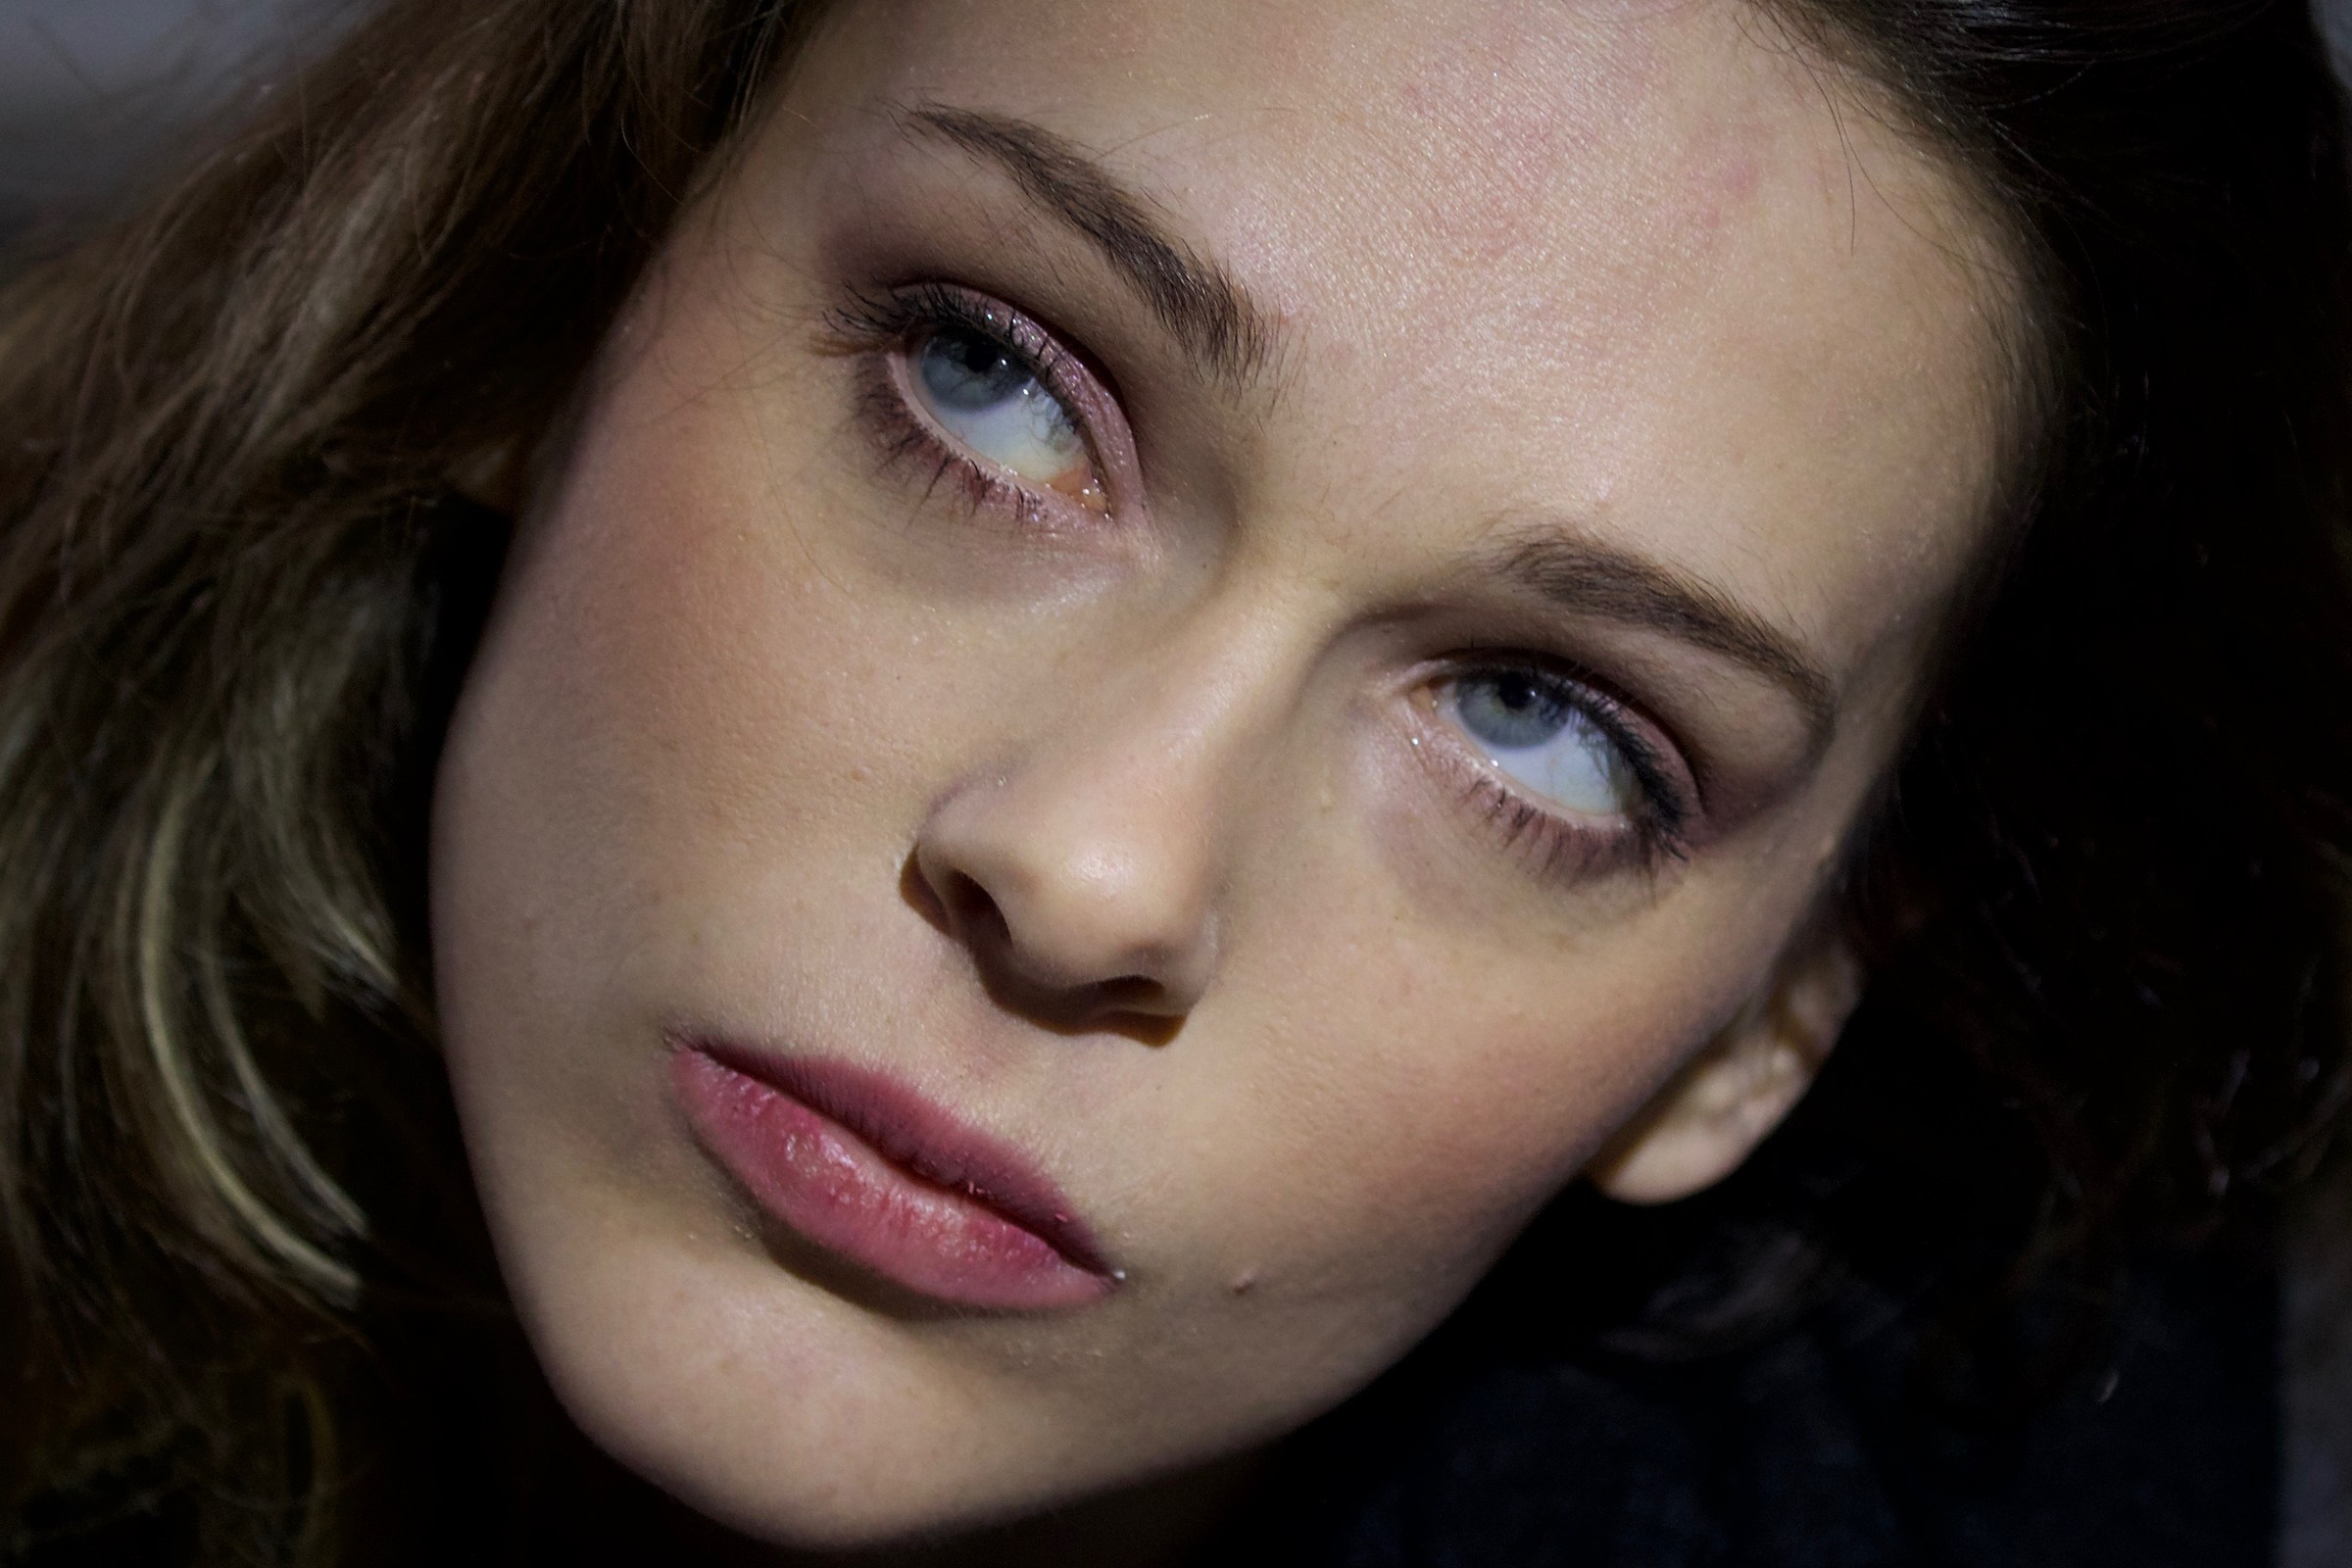 dedicated to those who want to see the Eyes of Chiara in color...